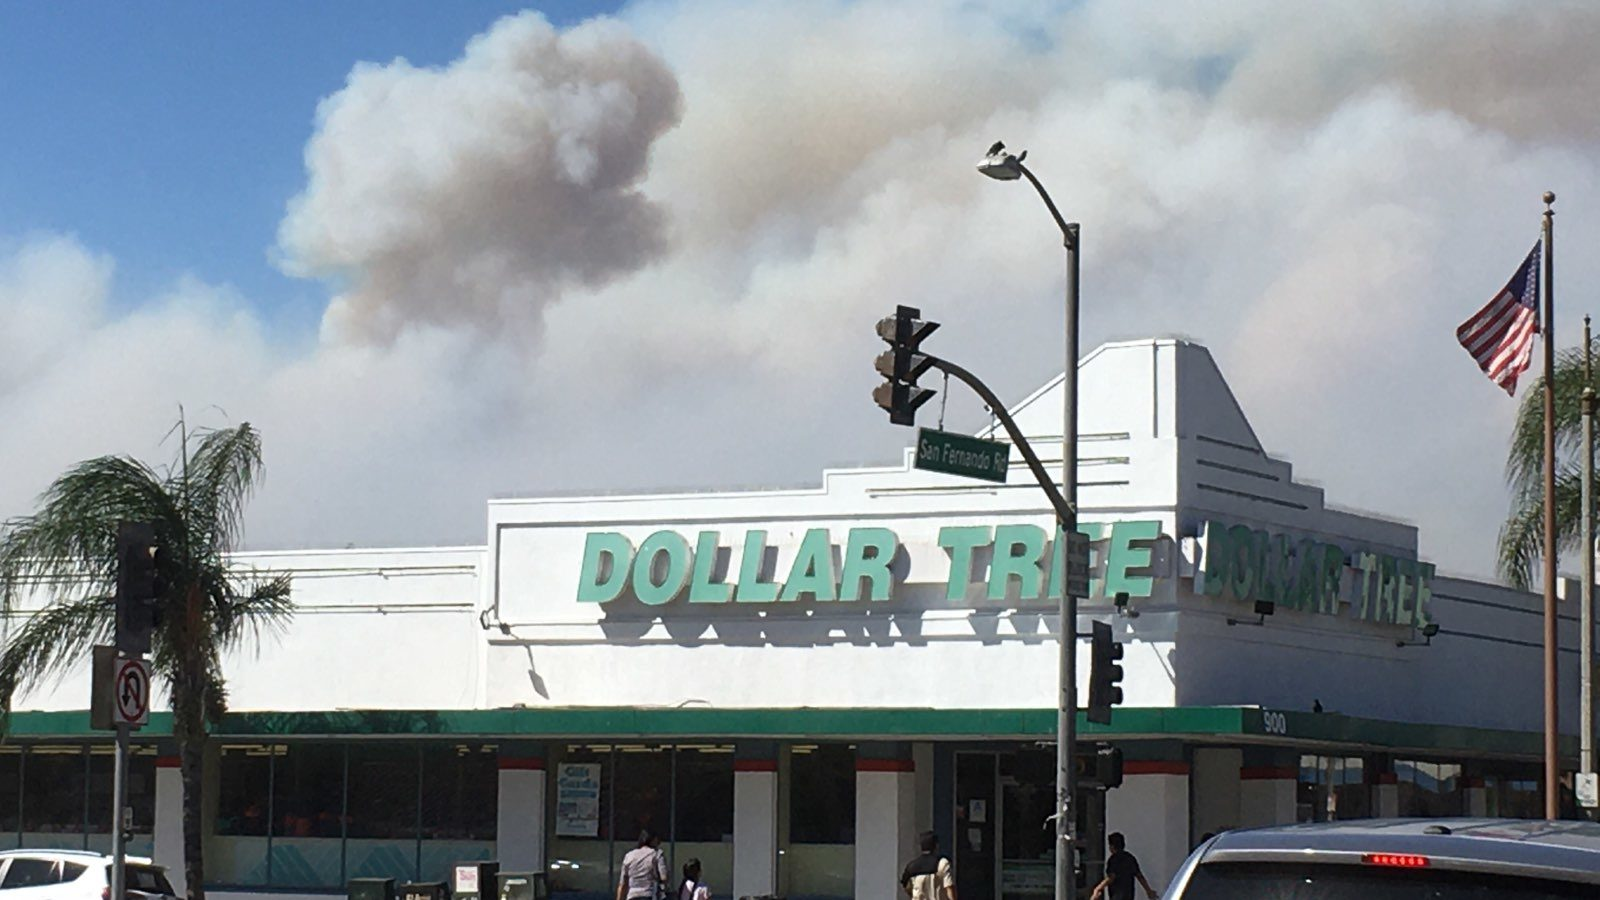 Smoke from the Sandalwood Fire above a Dollar Tree in San Fernando, California, on October 11. The fire had burned through nearly 5,000 acres as of Friday afternoon, killing one and causing episodes of respiratory distress and other medical issues. (Noah Smith/Direct Relief)